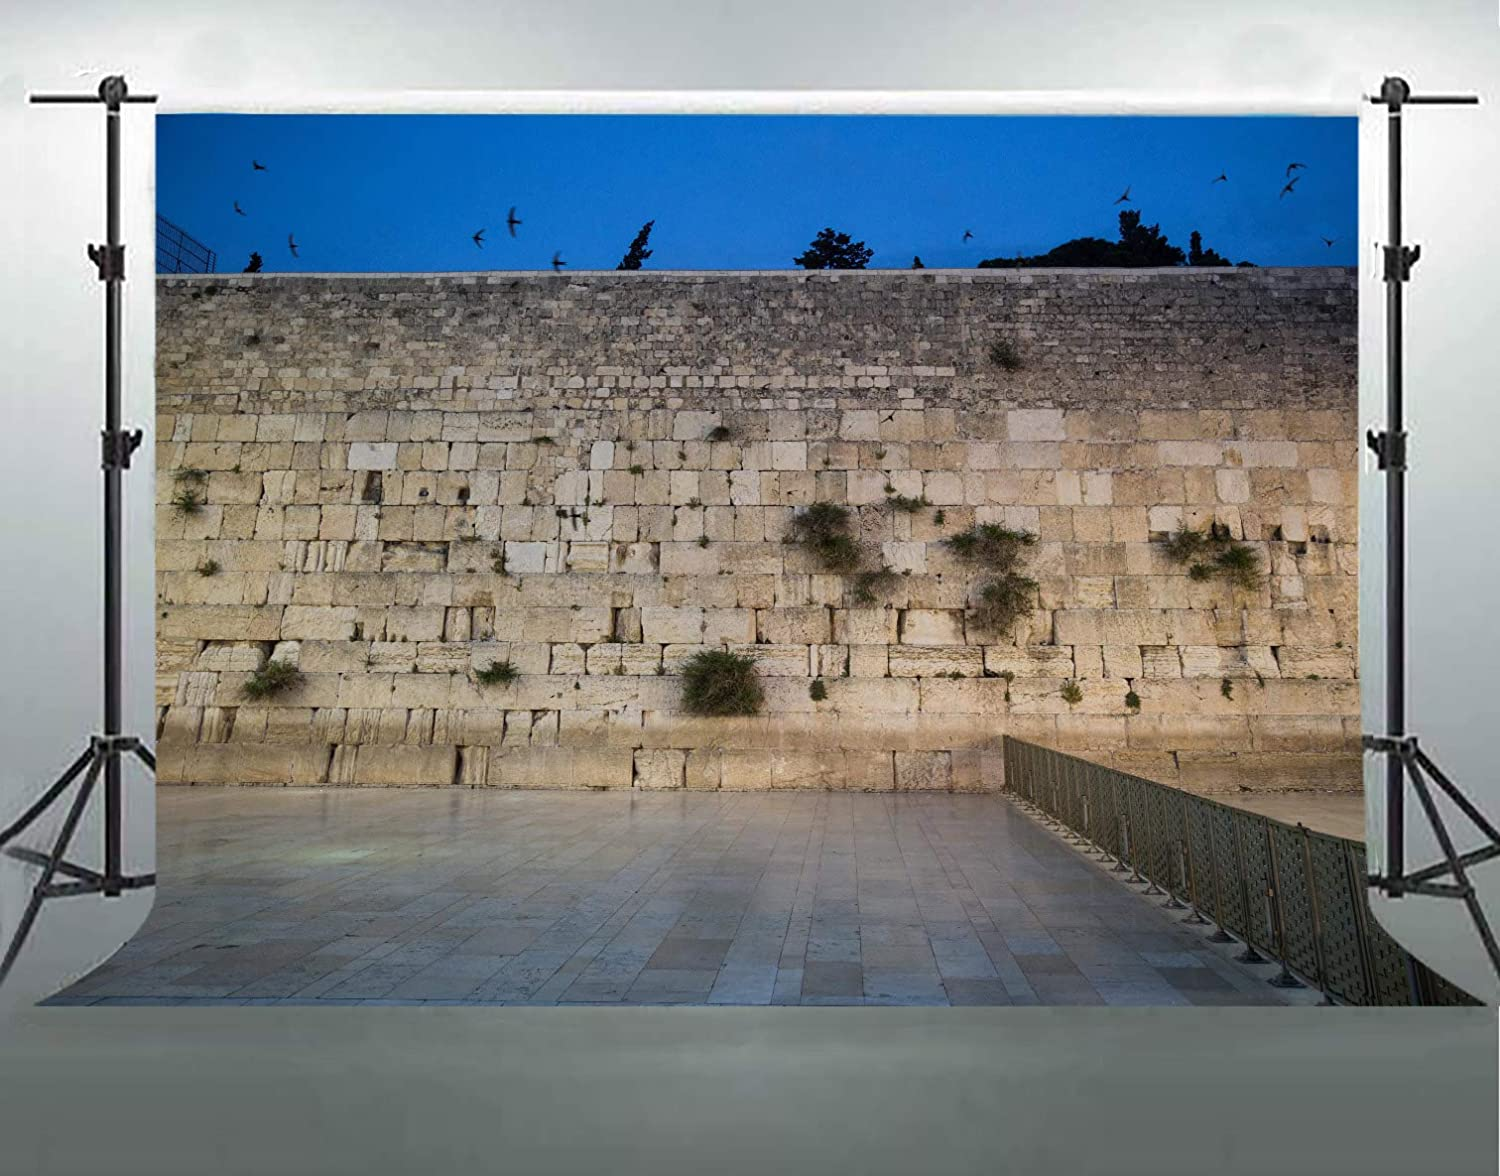 Jerusalem Western Wall Backdrop for Photography Israel City Square Backgrounds Photo Video Shooting Props Cotton Backdrop 7x5ft F-FUN SOUL DSFS023